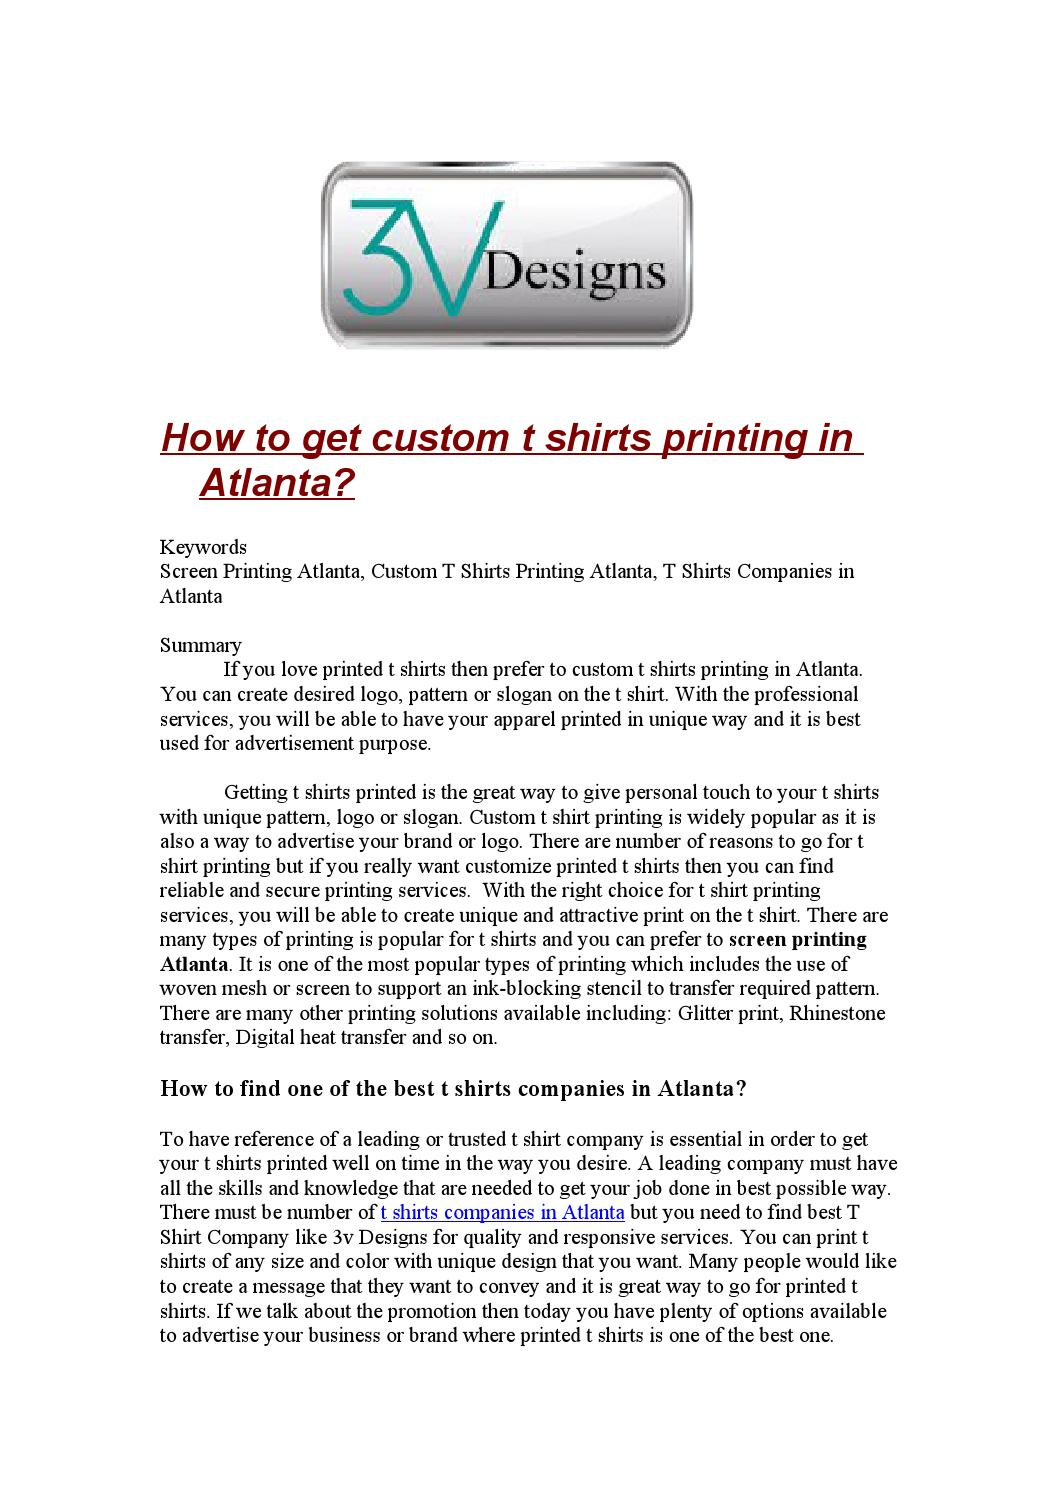 How To Get Custom T Shirts Printing In Atlanta By Same Day T Shirt